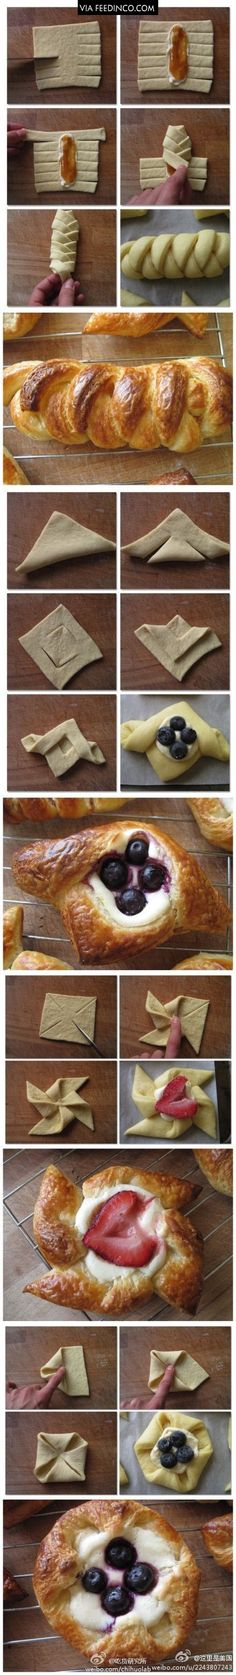 Pastry folding 101 >>> check similar images on Feedinco.com